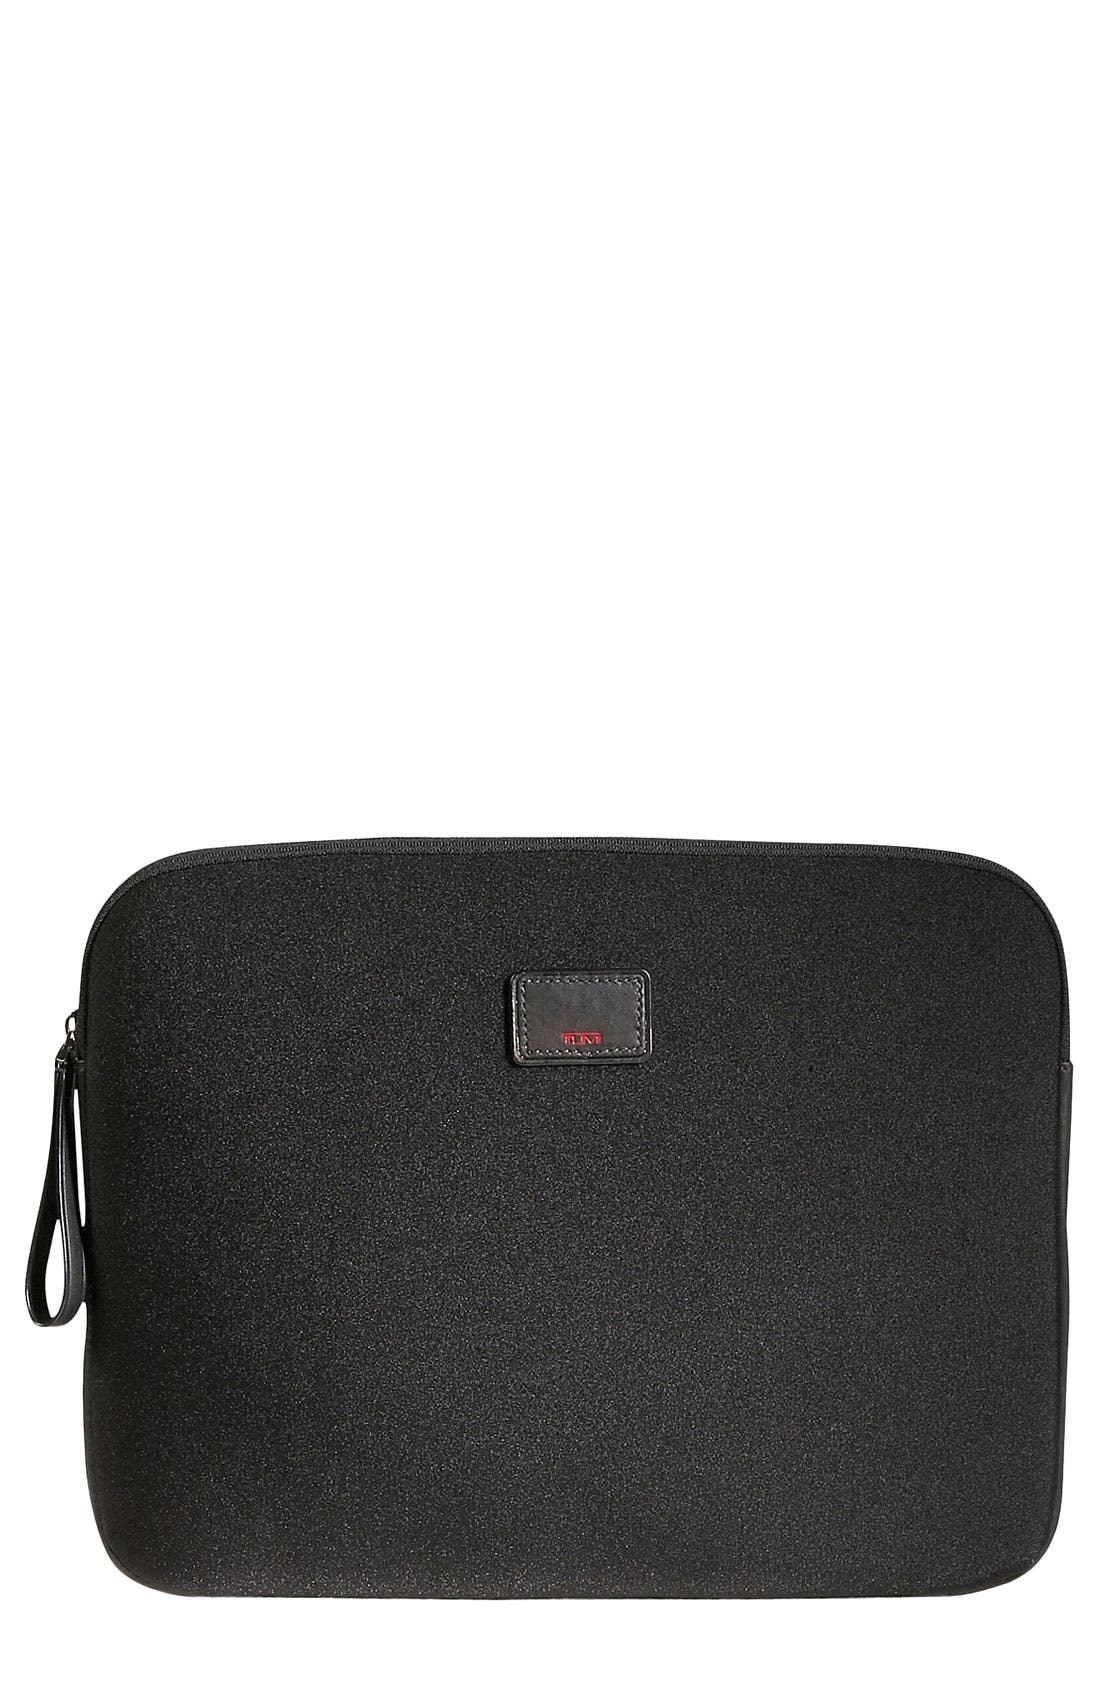 Alternate Image 1 Selected - Tumi 'Alpha - Small' Laptop Cover